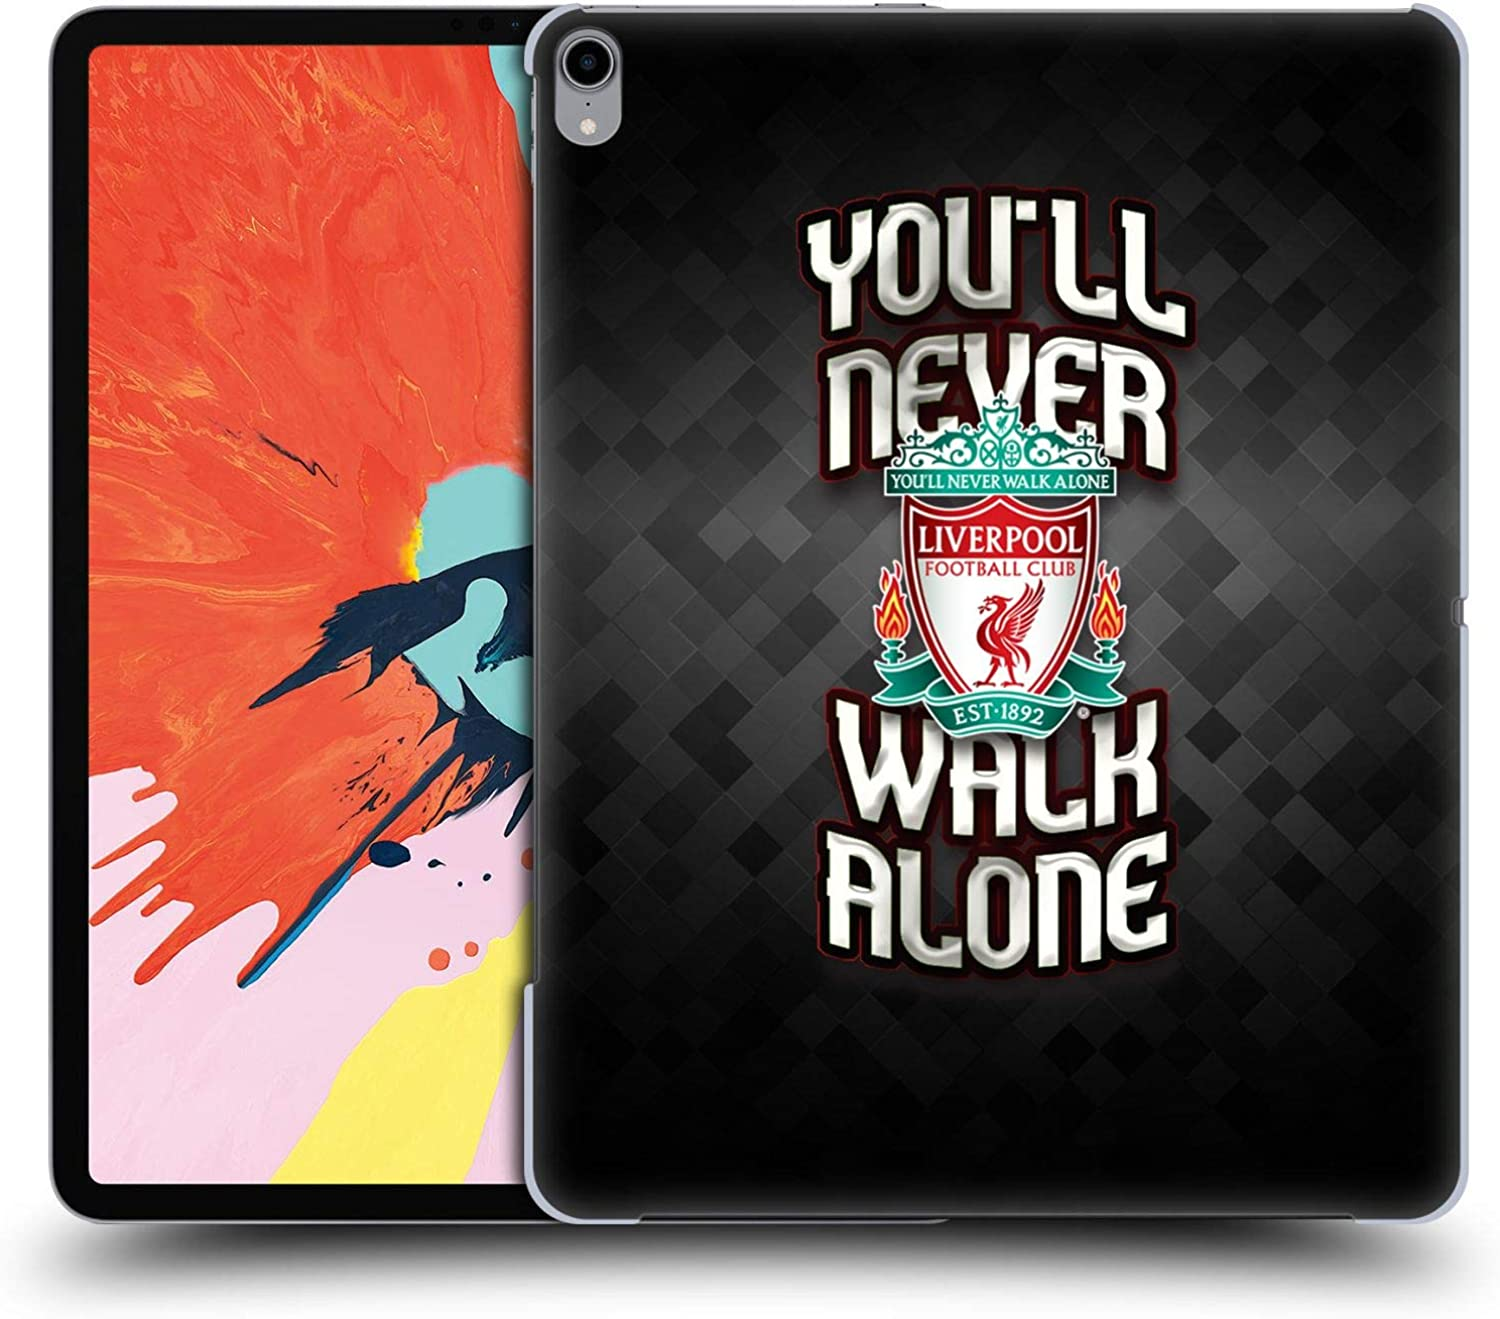 Official Liverpool Football Club Grey Pixel Crest You'll Never Walk Alone Hard Back Case Compatible for iPad Pro 12.9 (2018)